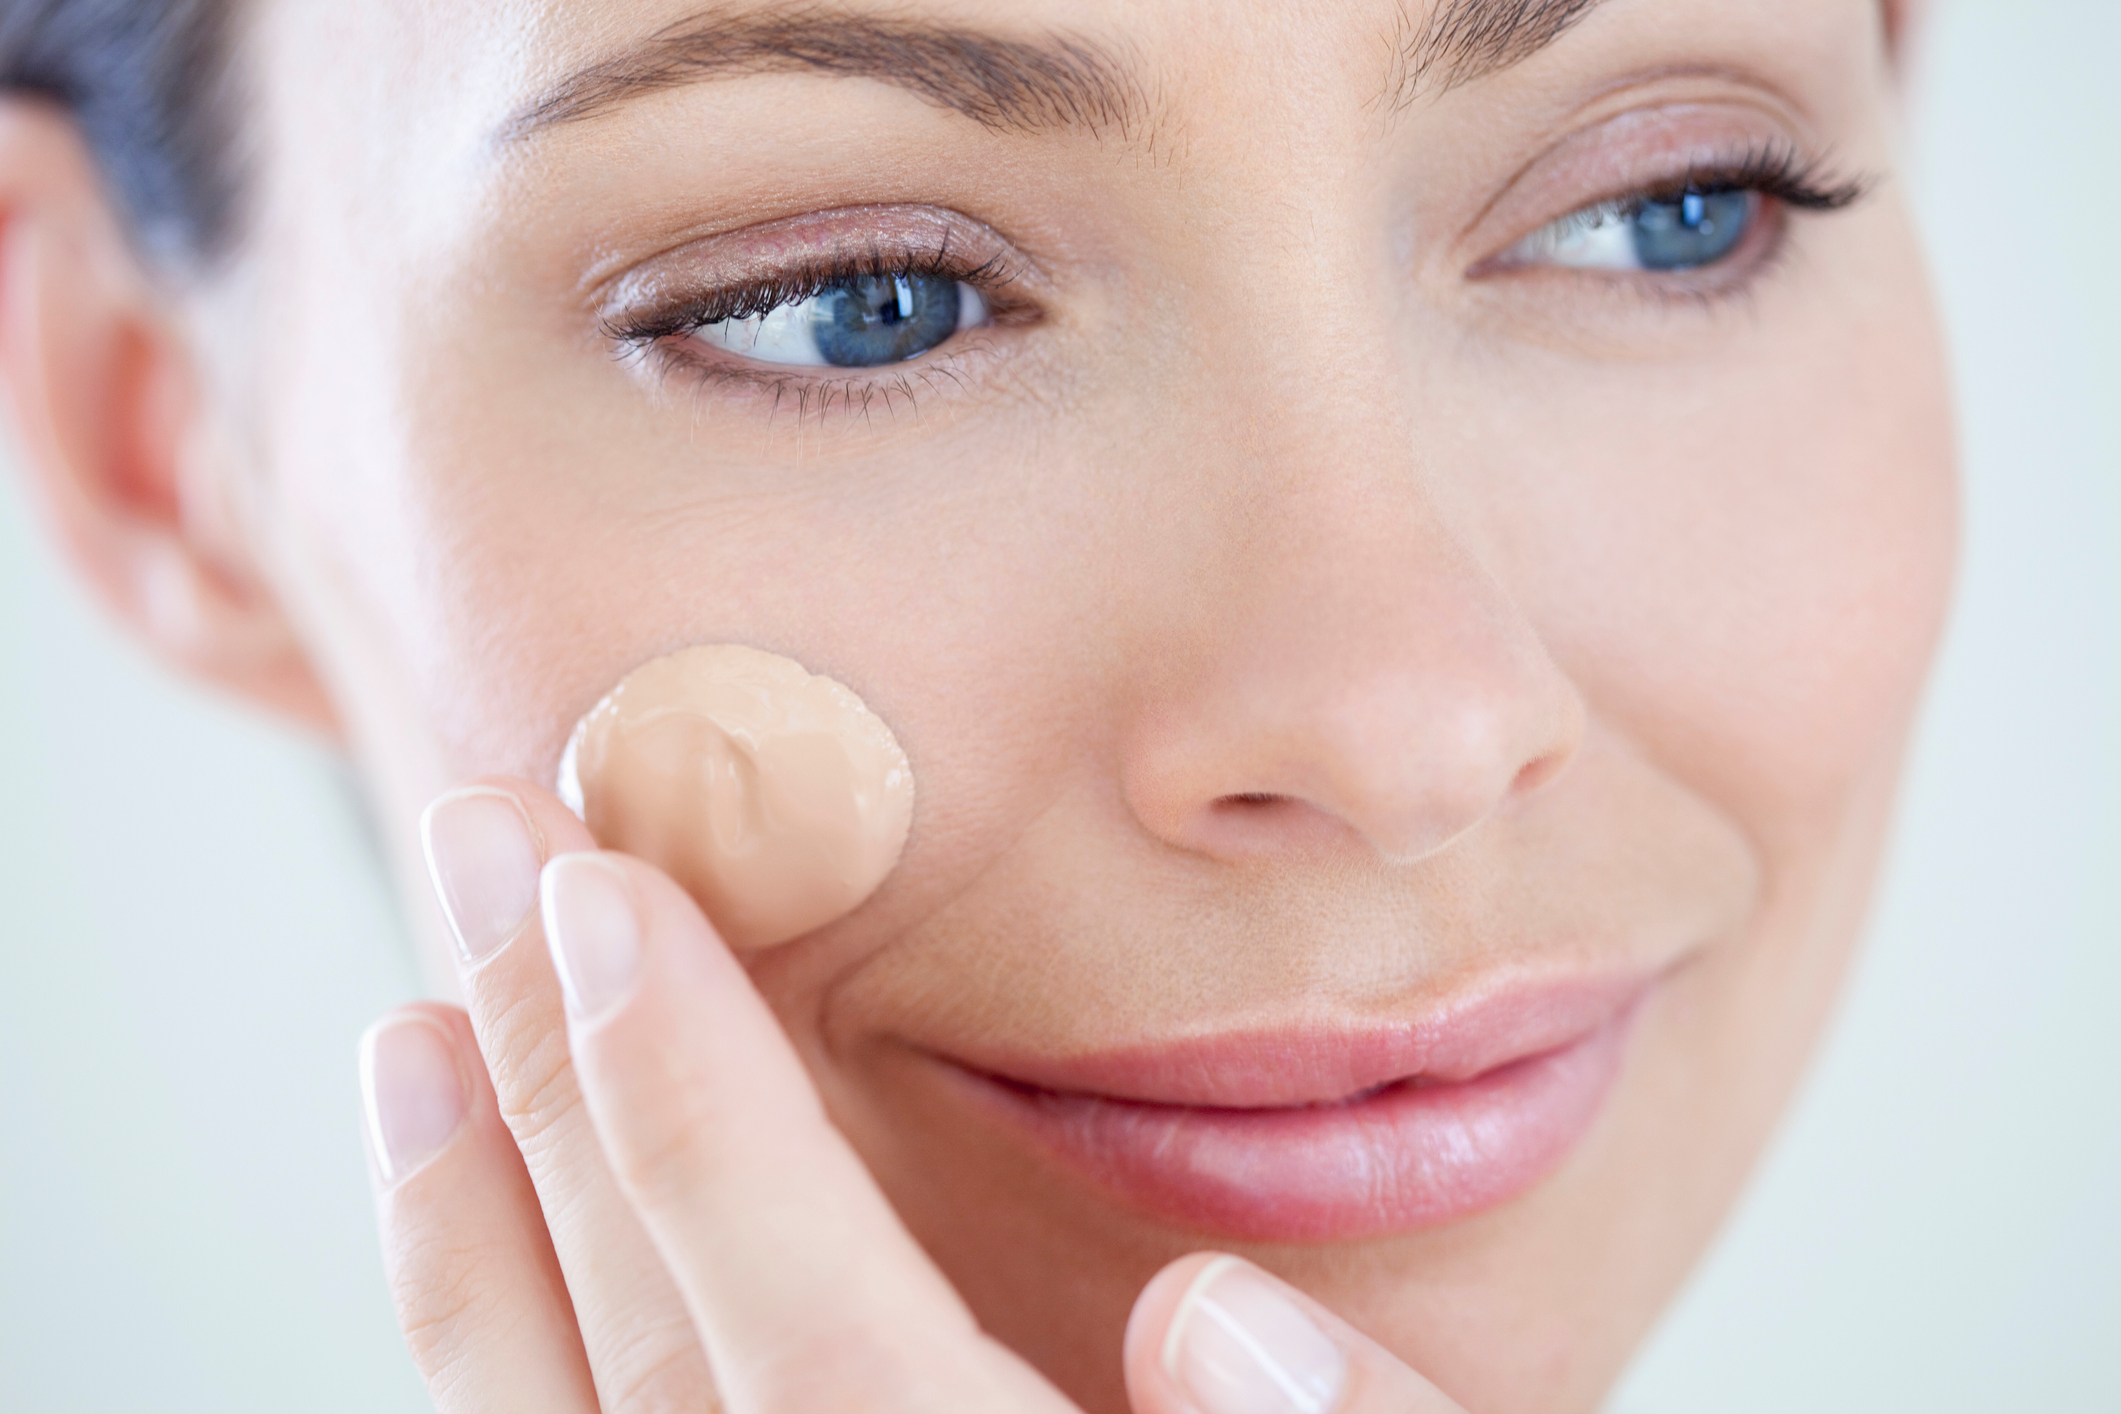 12 Best Full-Coverage Foundations for Dry Skin, According to Dermatologists and Makeup Artists